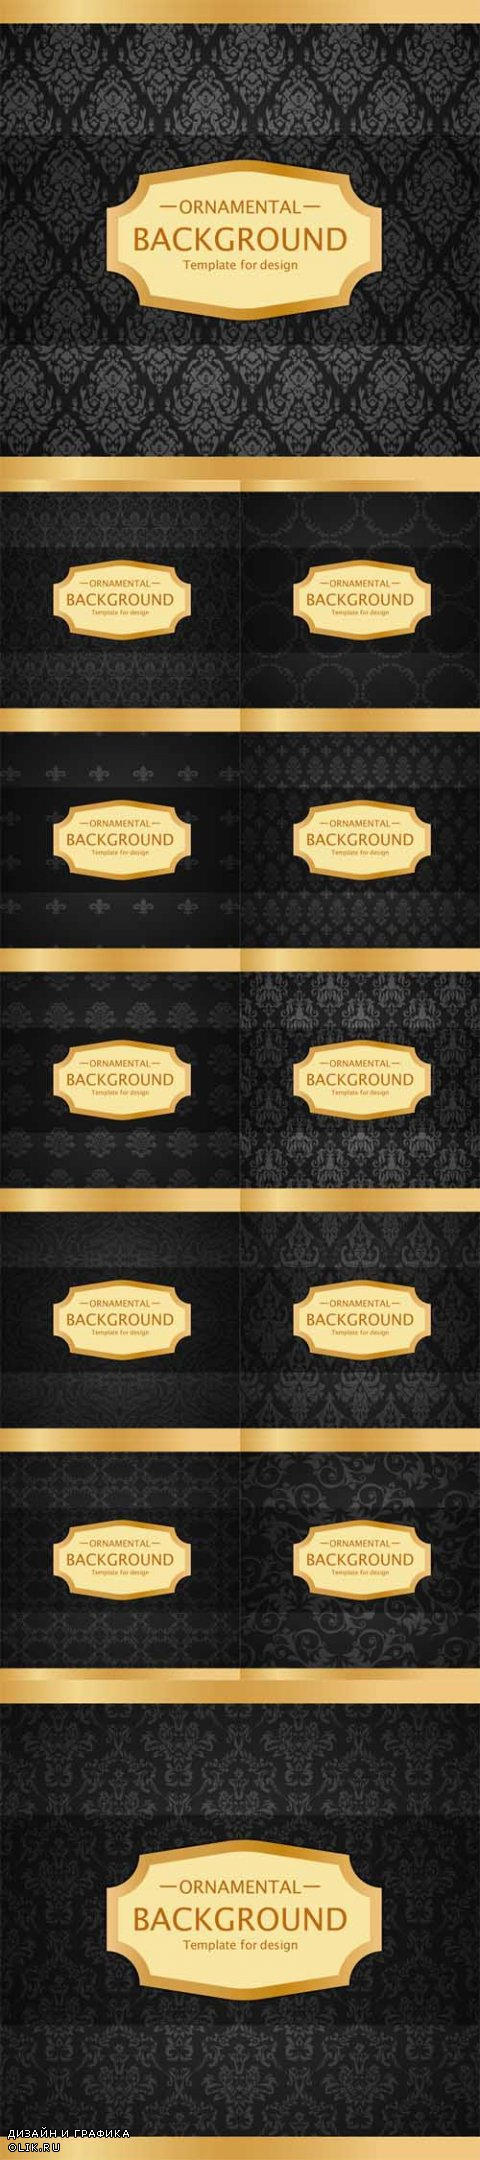 Vector Luxury Vintage Background. Perfect as Invitation or Announcement